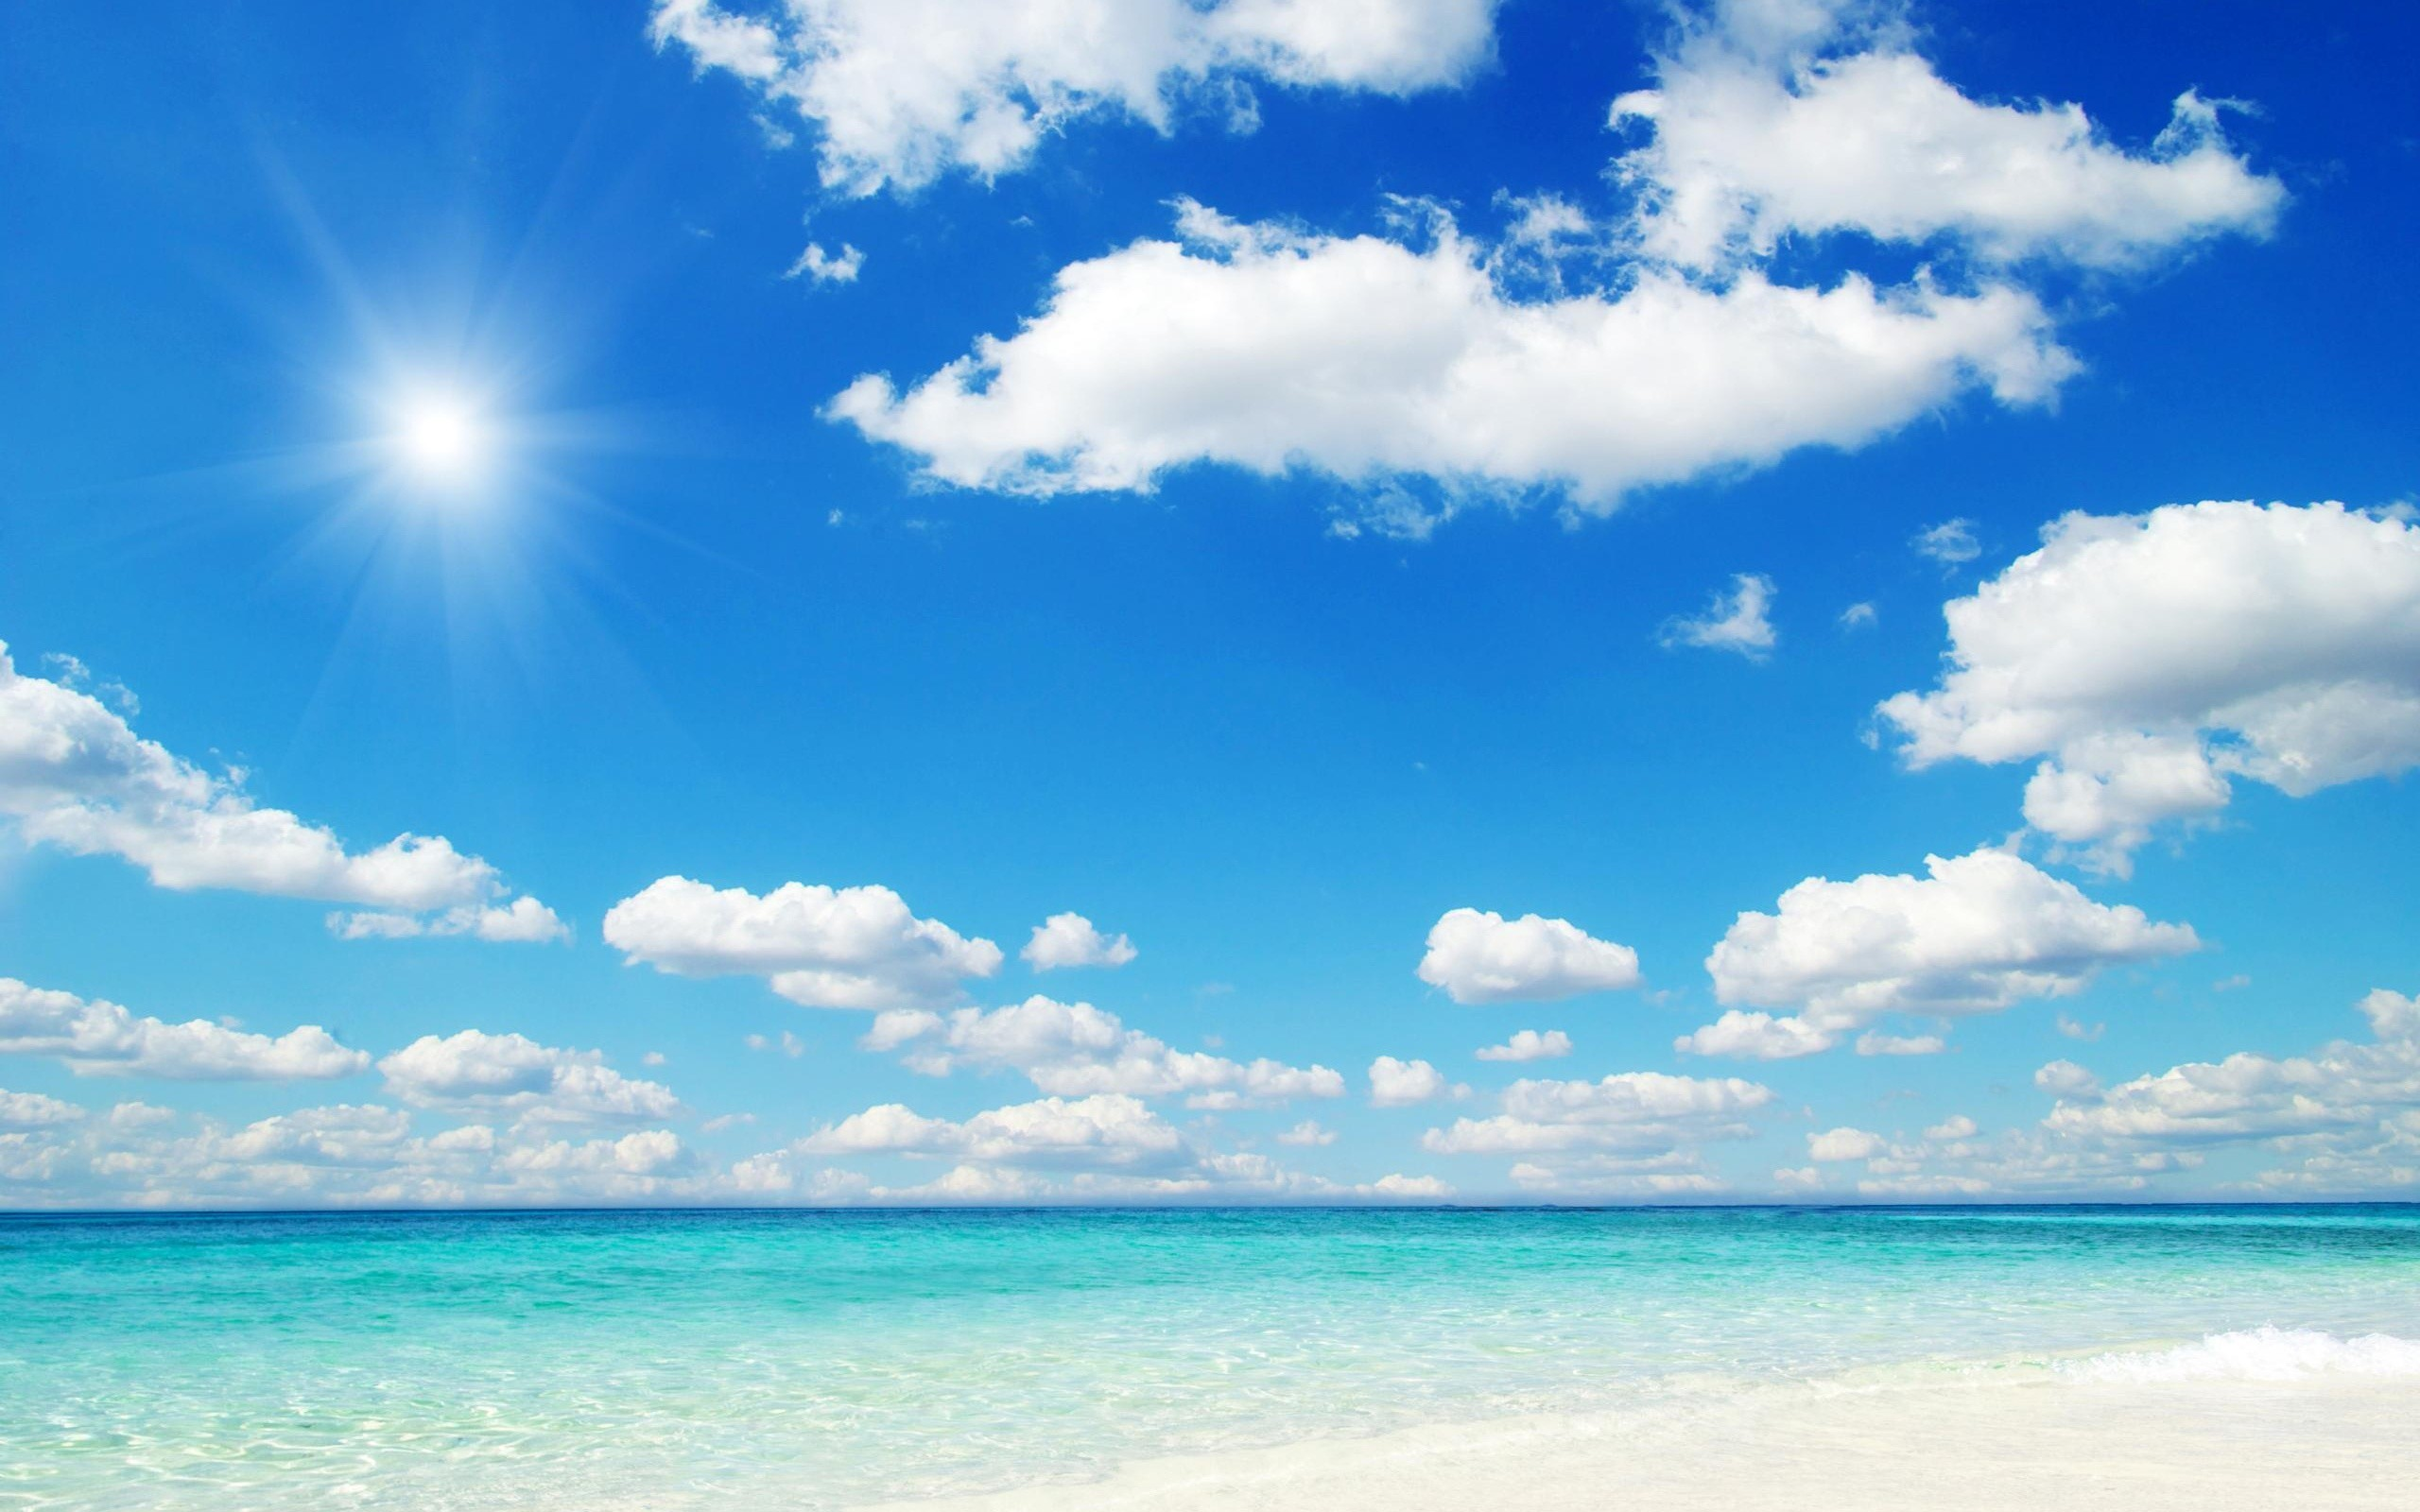 2560x1600 Beach blue sky wallpaper